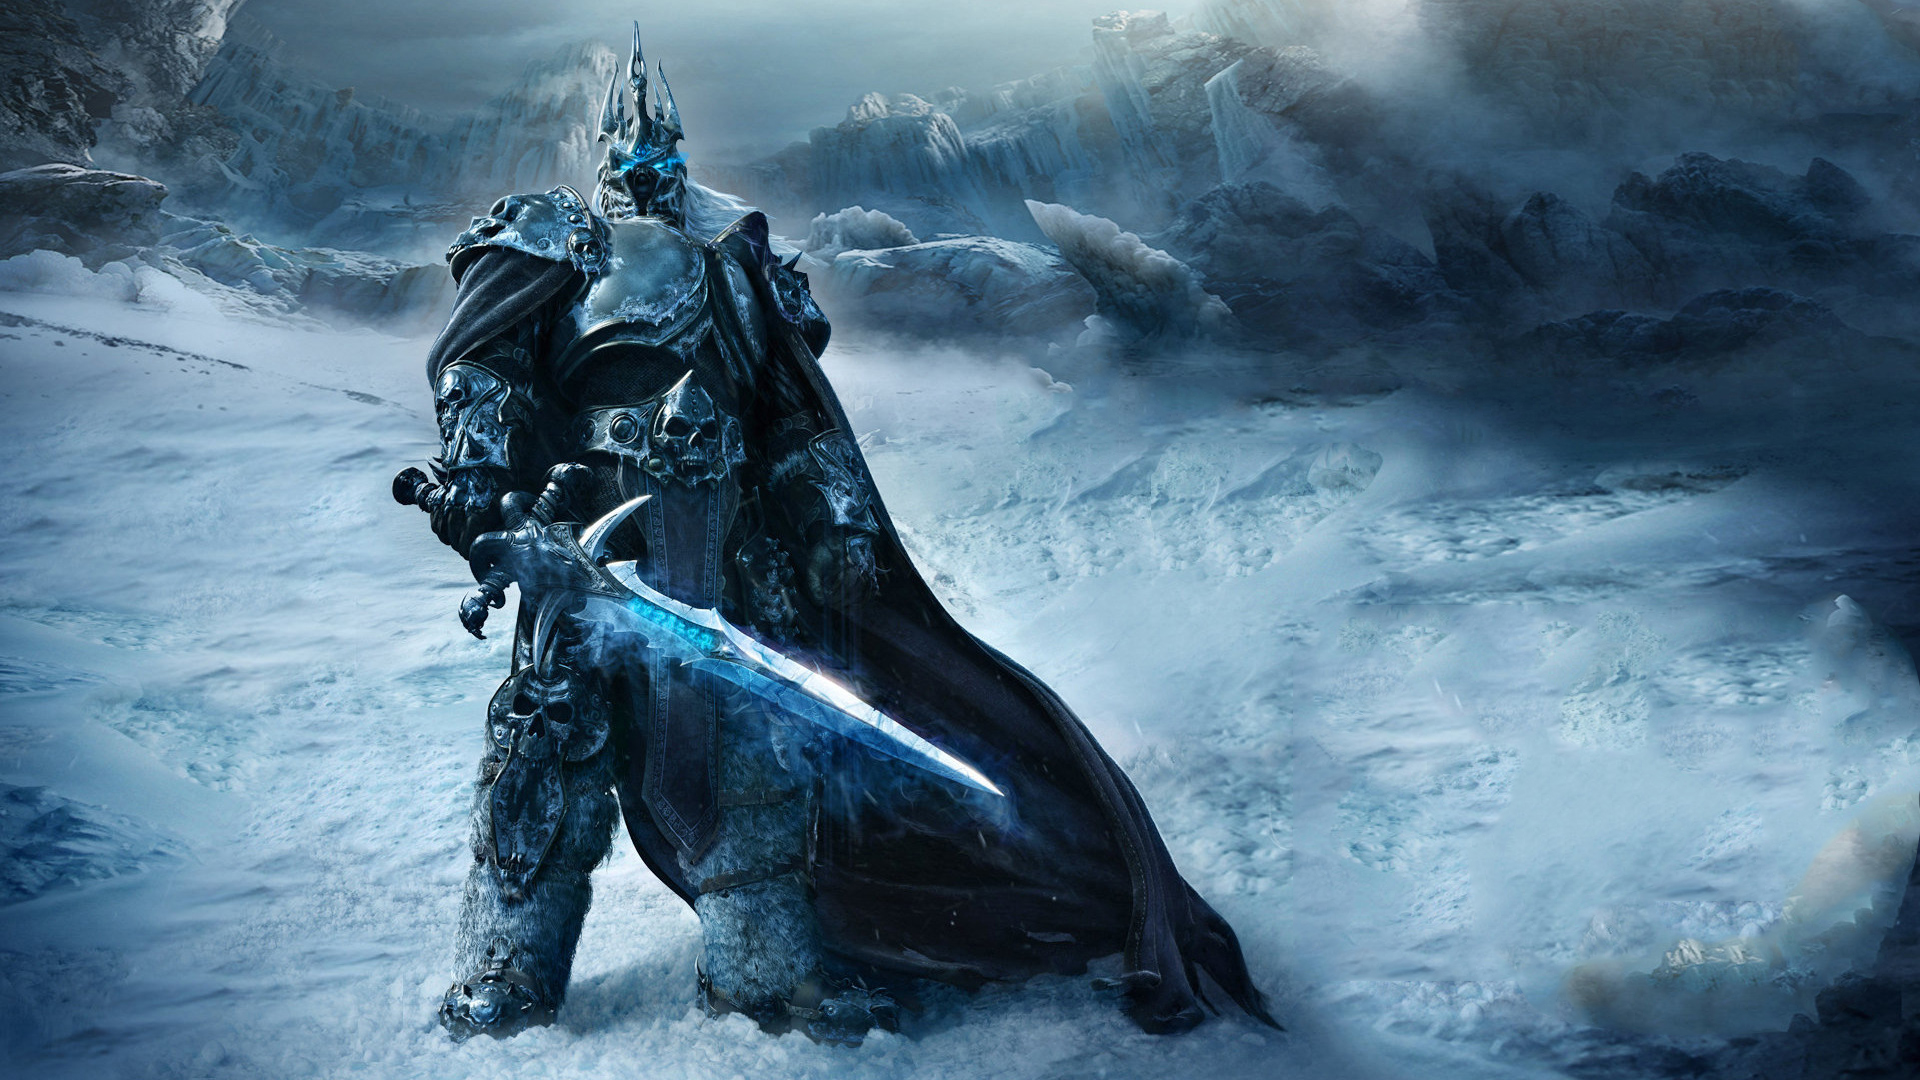 72 The Lich King Wallpaper On Wallpapersafari